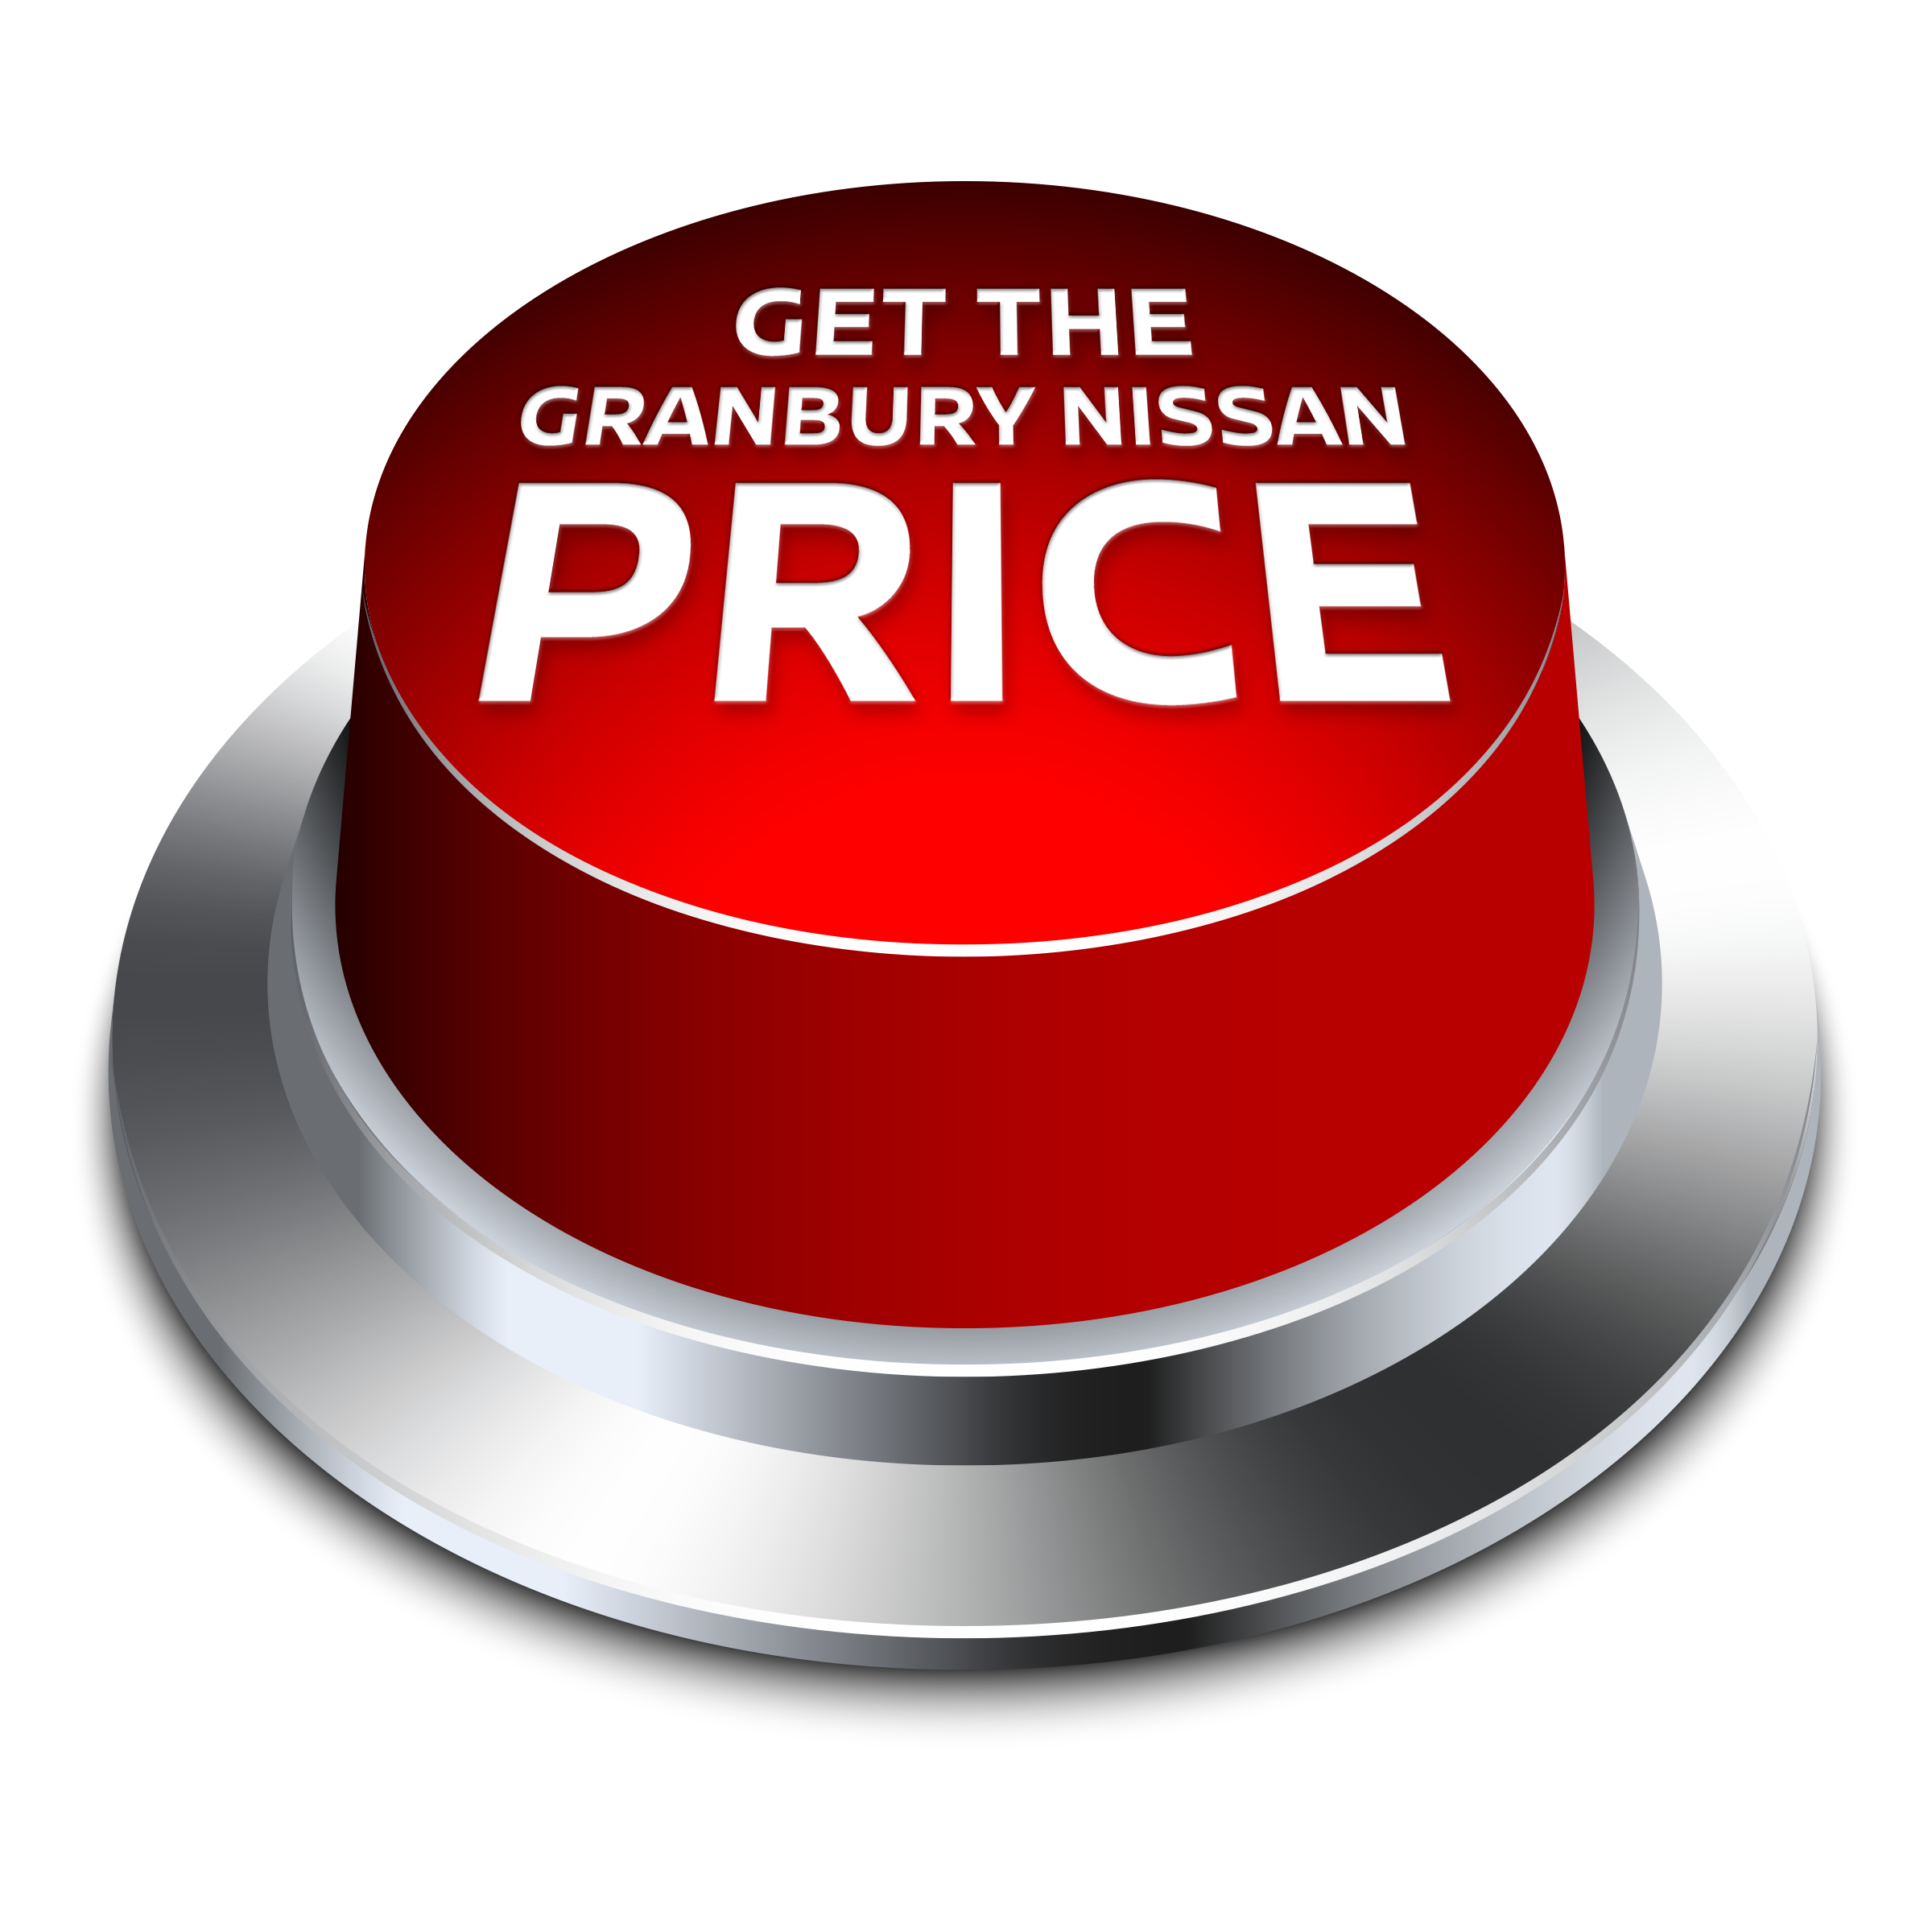 Get Price for this 2014 Nissan Sentra S 4dr Car